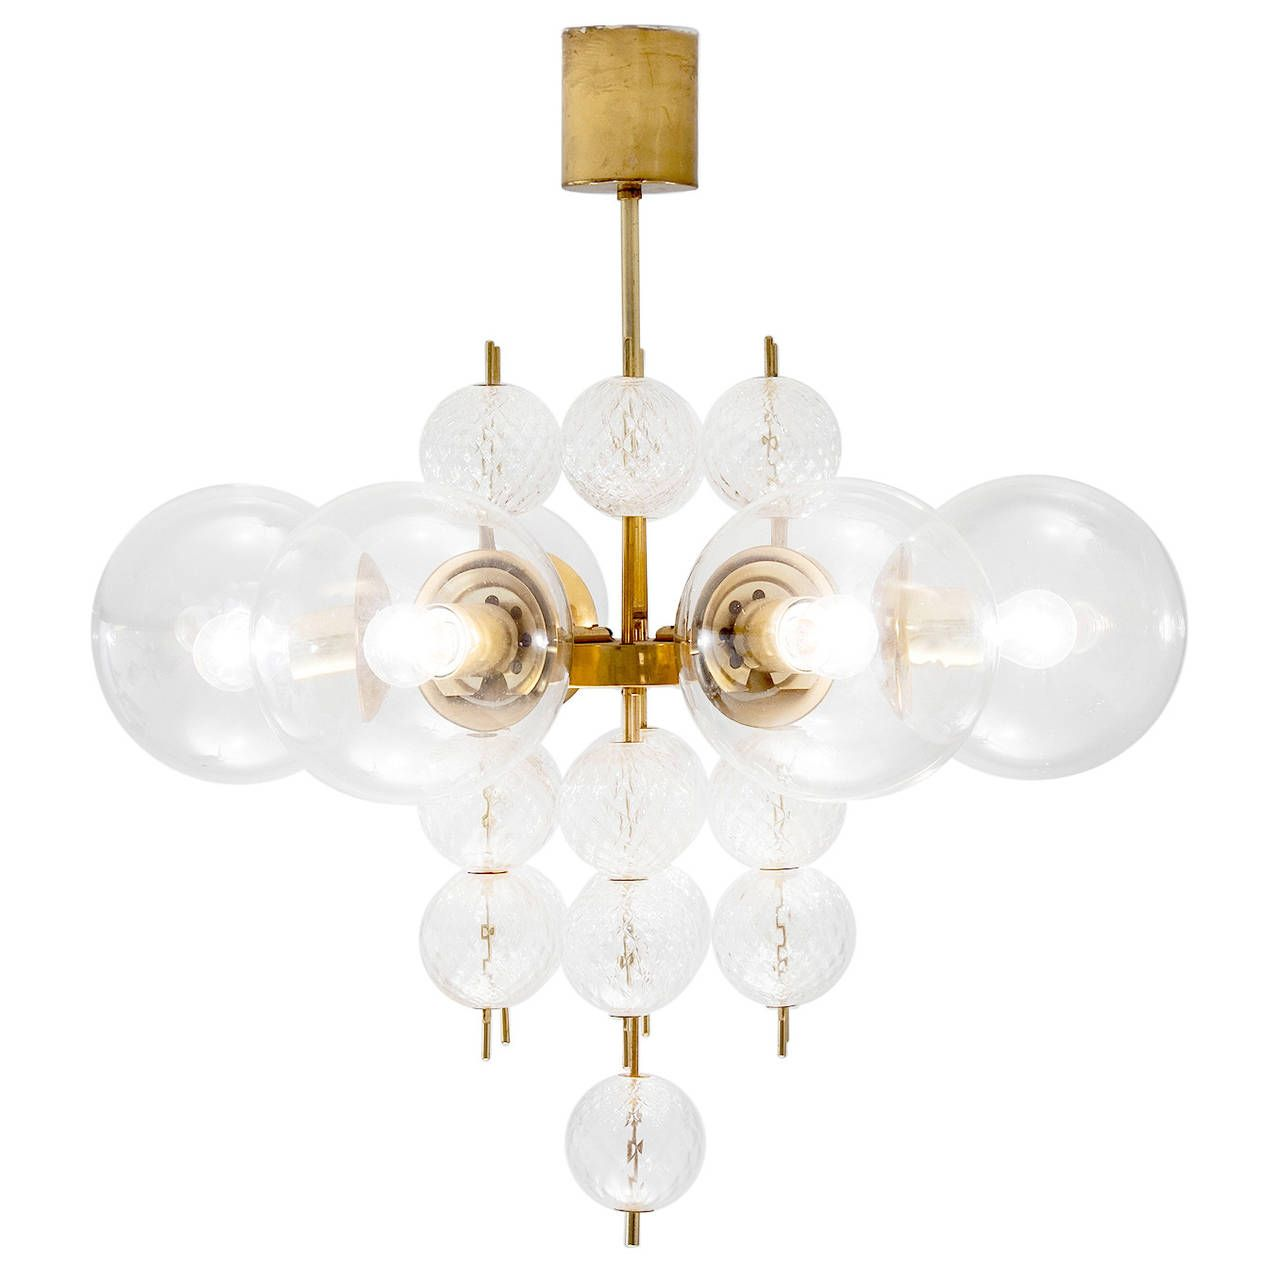 Large Chandelier with Brass and Glass Bulbs | Large chandeliers ...